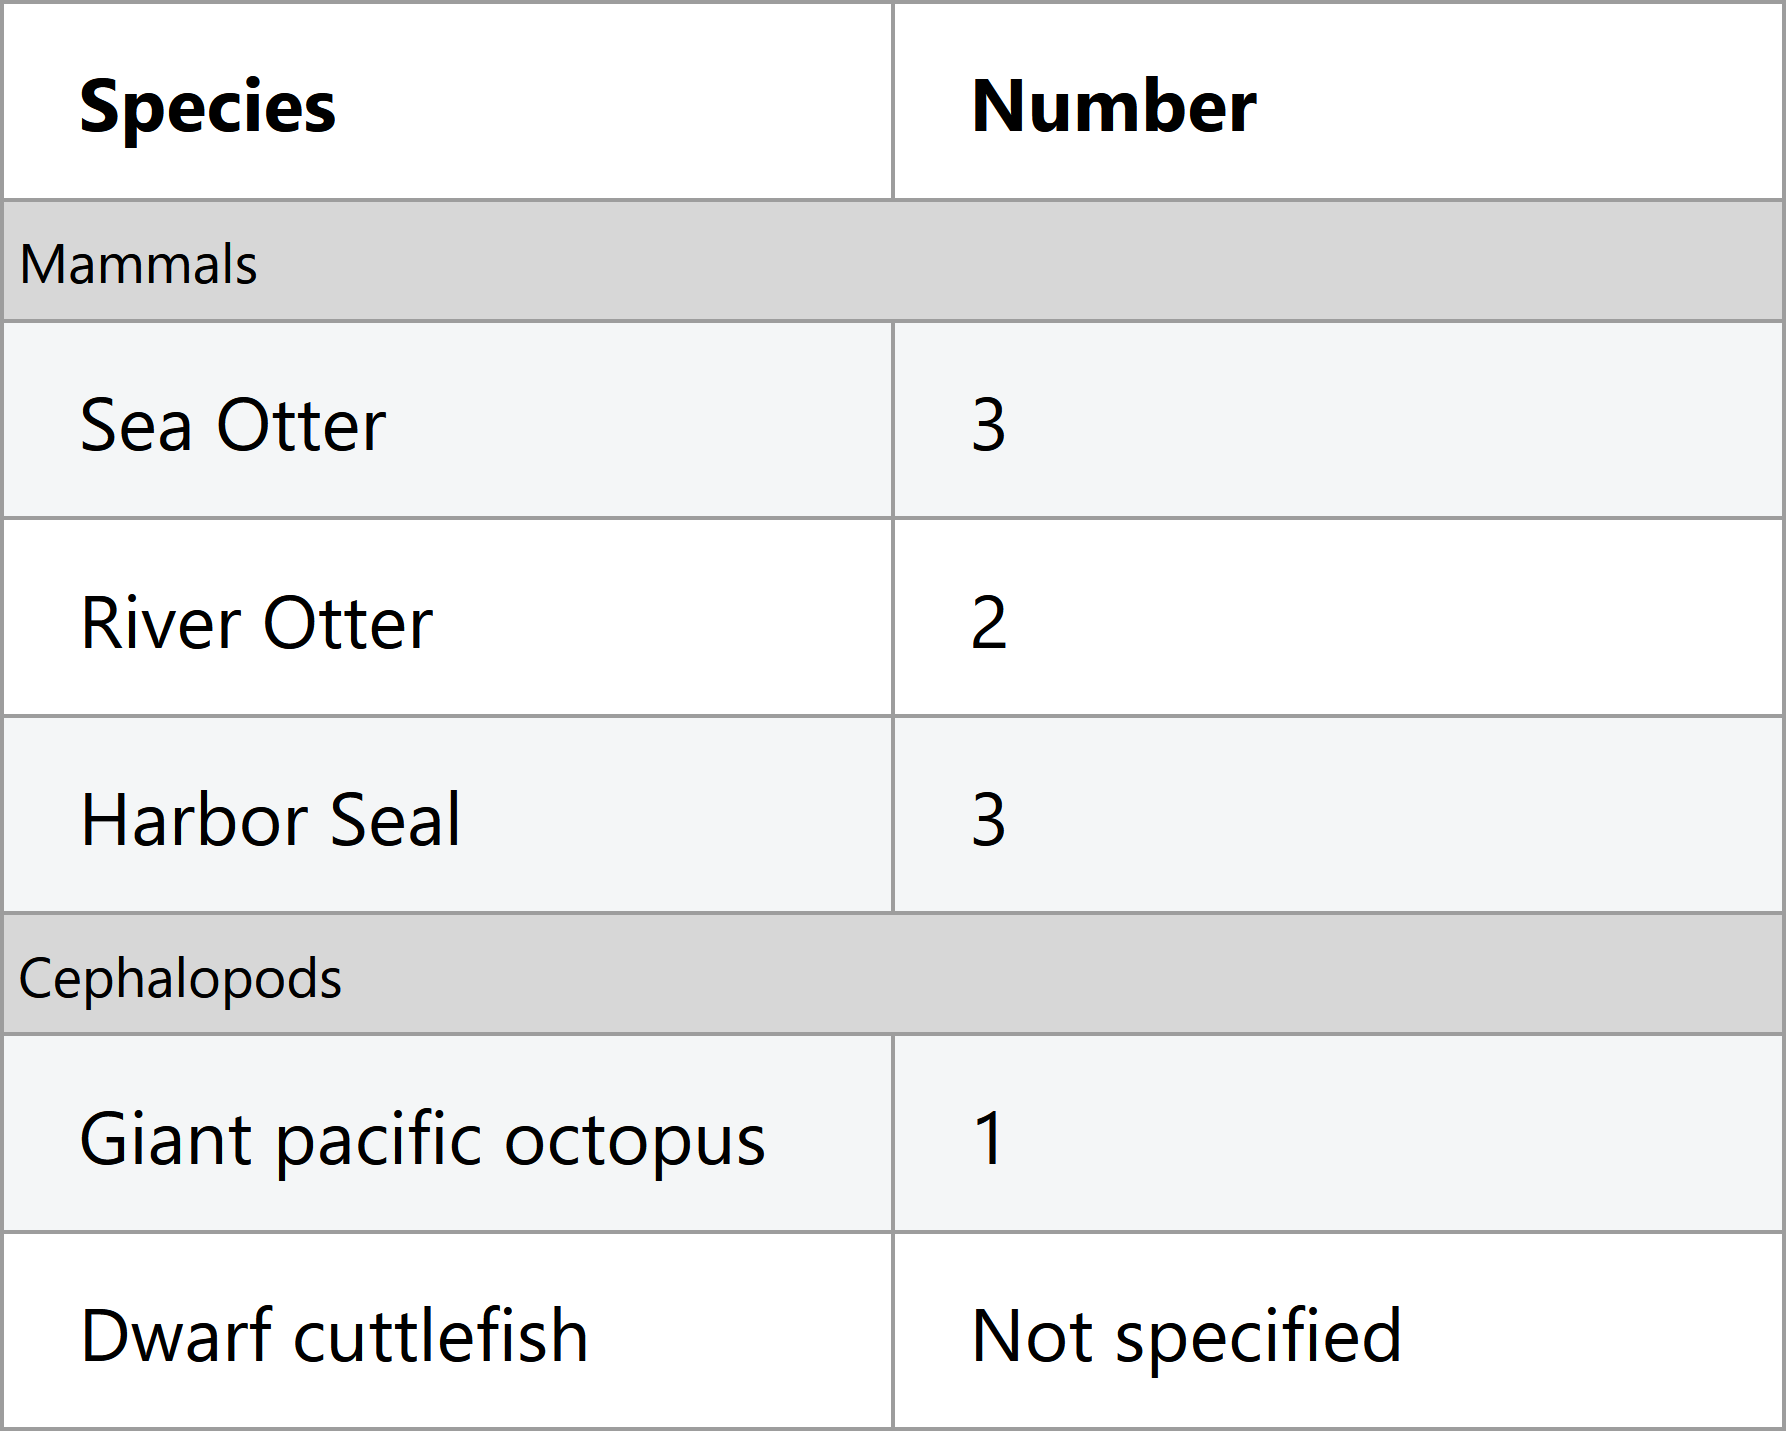 Screenshot of table of aquarium animals, this time with two groups of rows under mammal and cephalopod categories